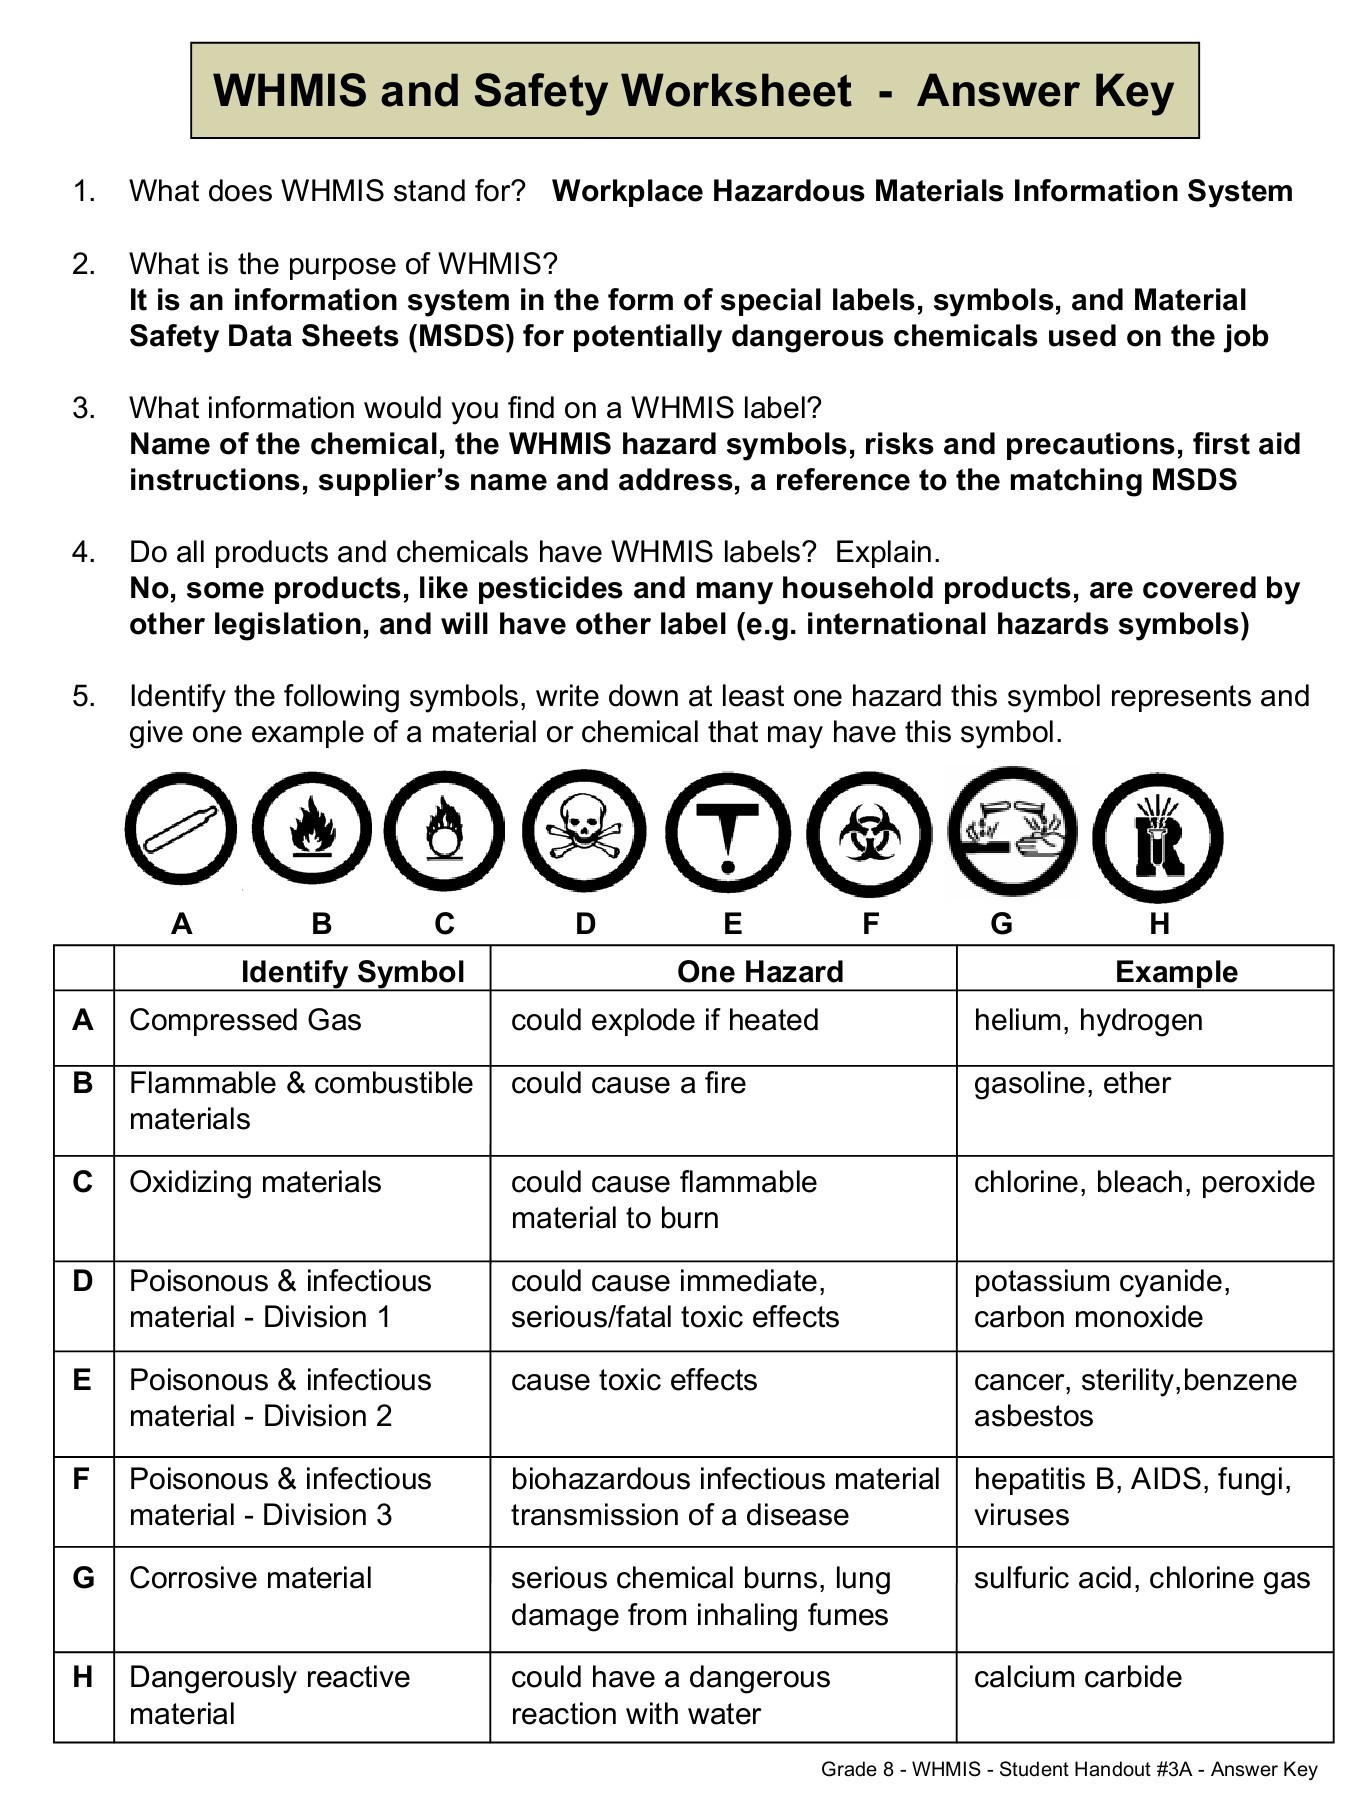 Lab Safety Worksheet Pdf Whmis and Safety Worksheet Answer Key Worksafebc Pages 1